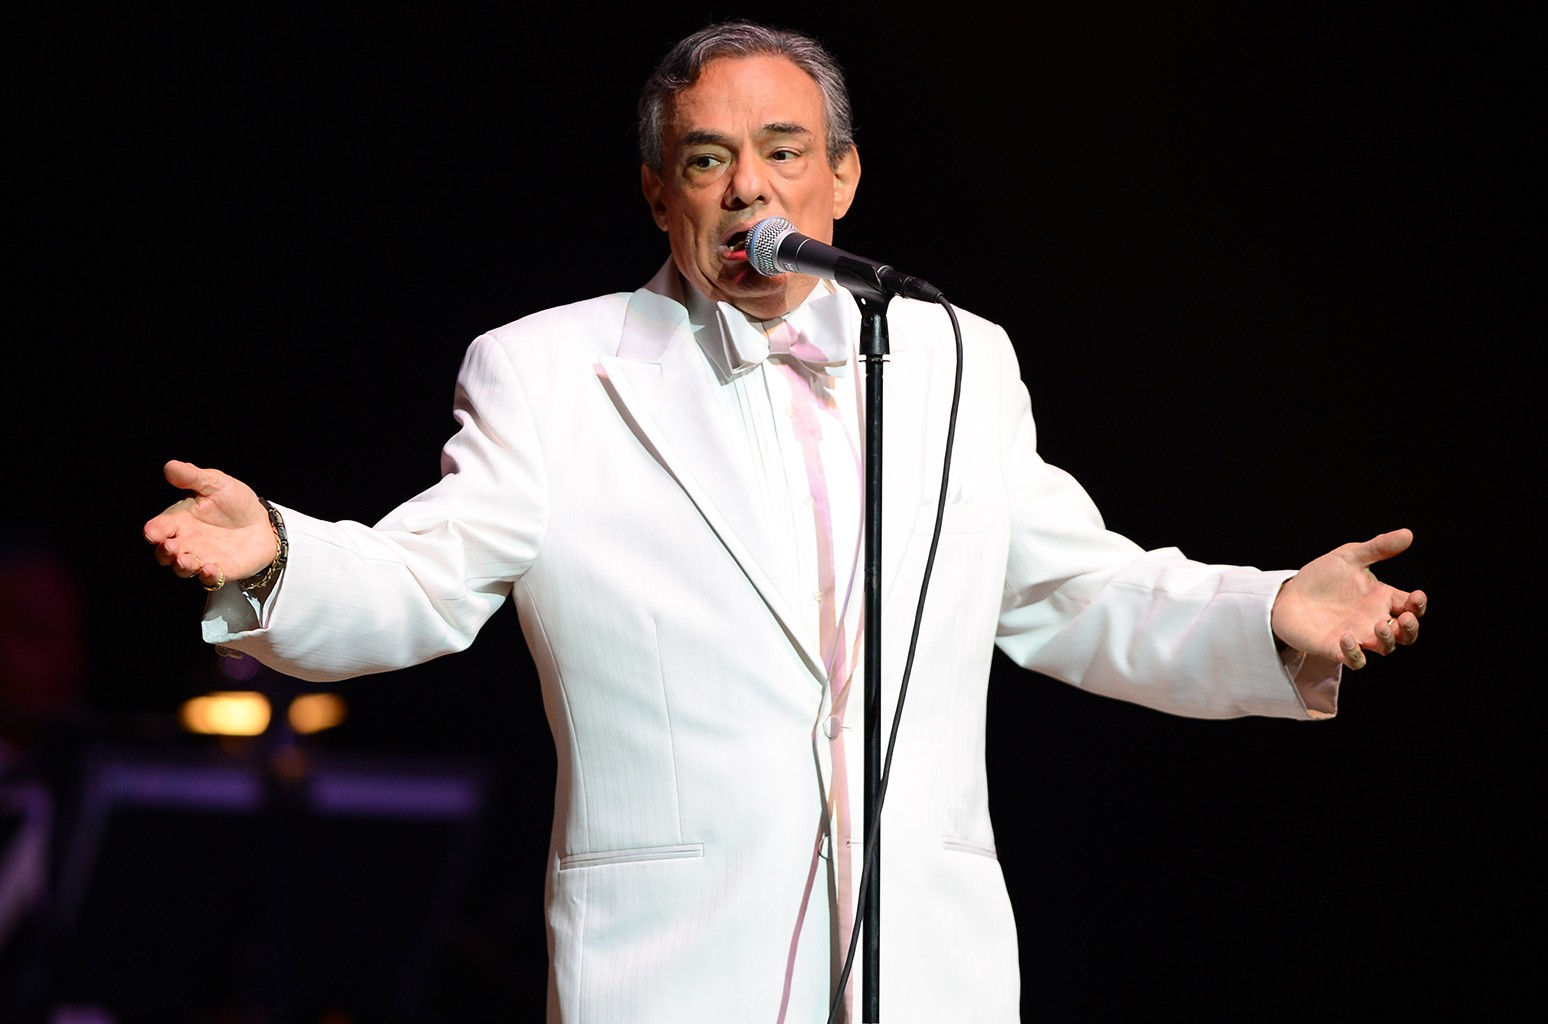 Jose Jose performs at Hard Rock Live! in the Seminole Hard Rock Hotel & Casino on Dec. 16, 2012 in Hollywood, Fla.